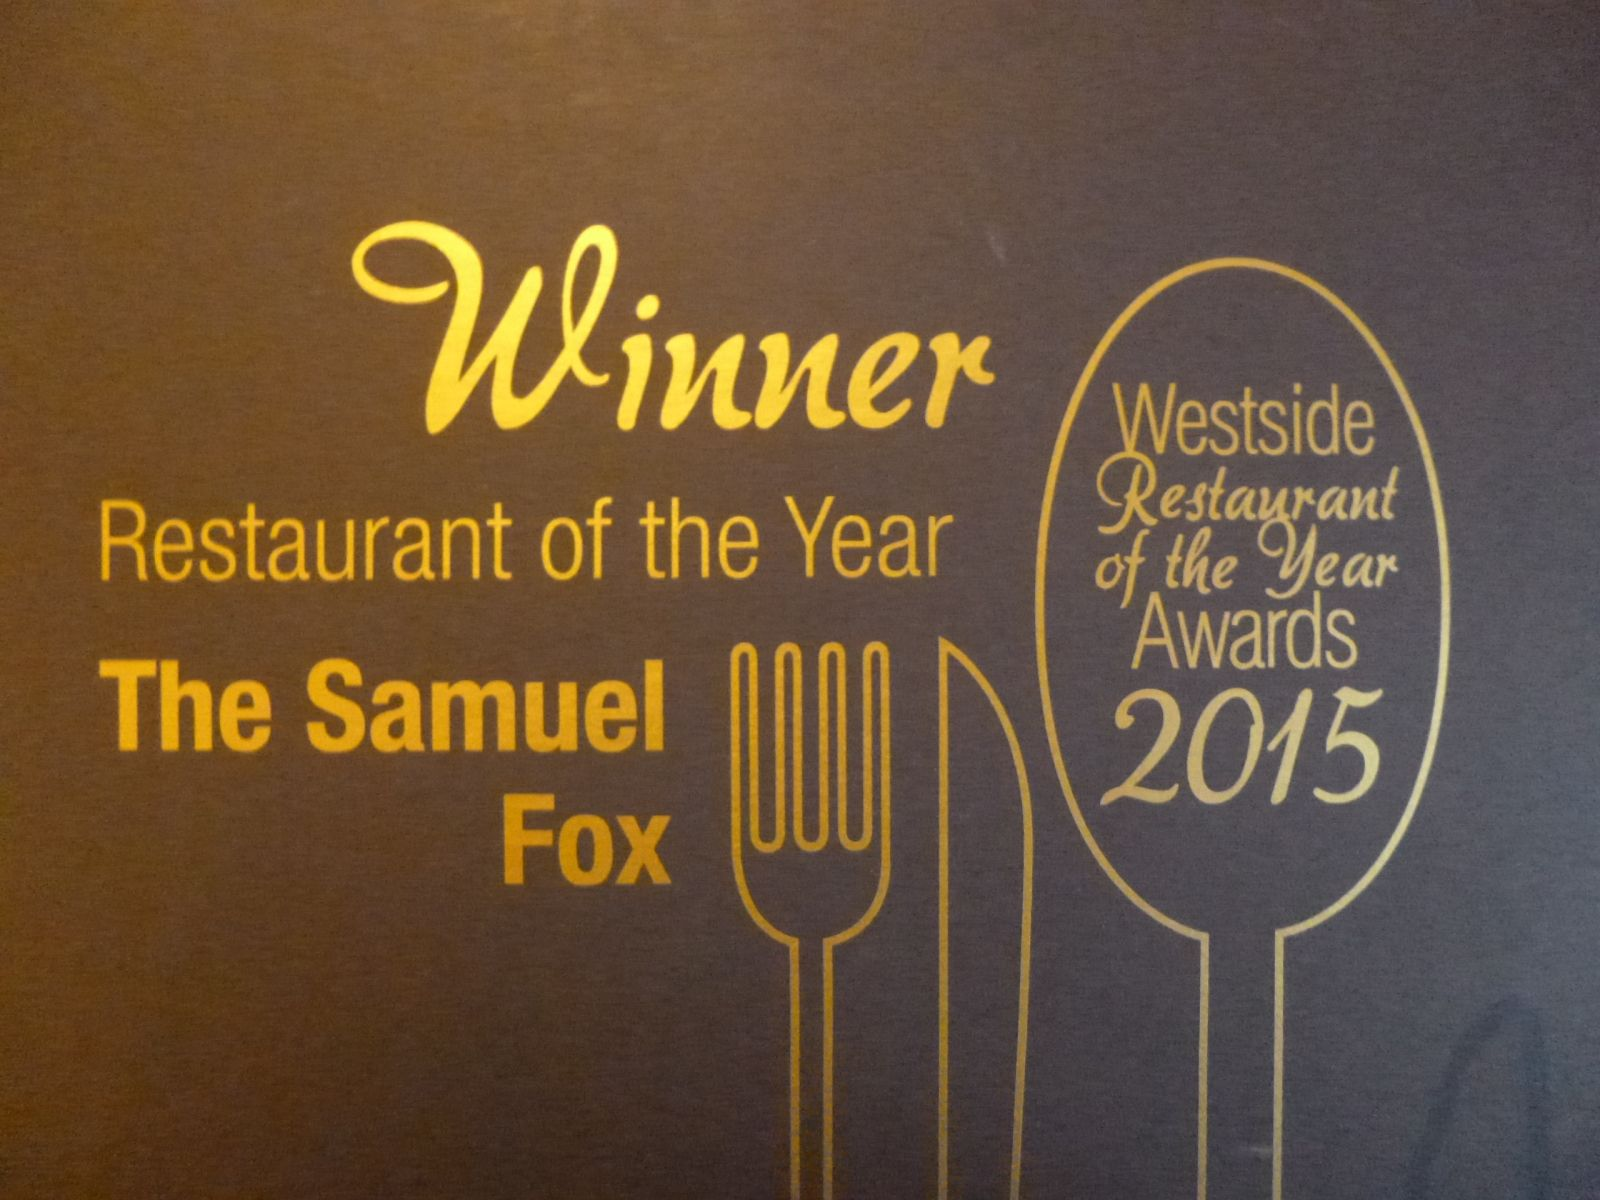 Sheffield Westside Restaurant of the Year